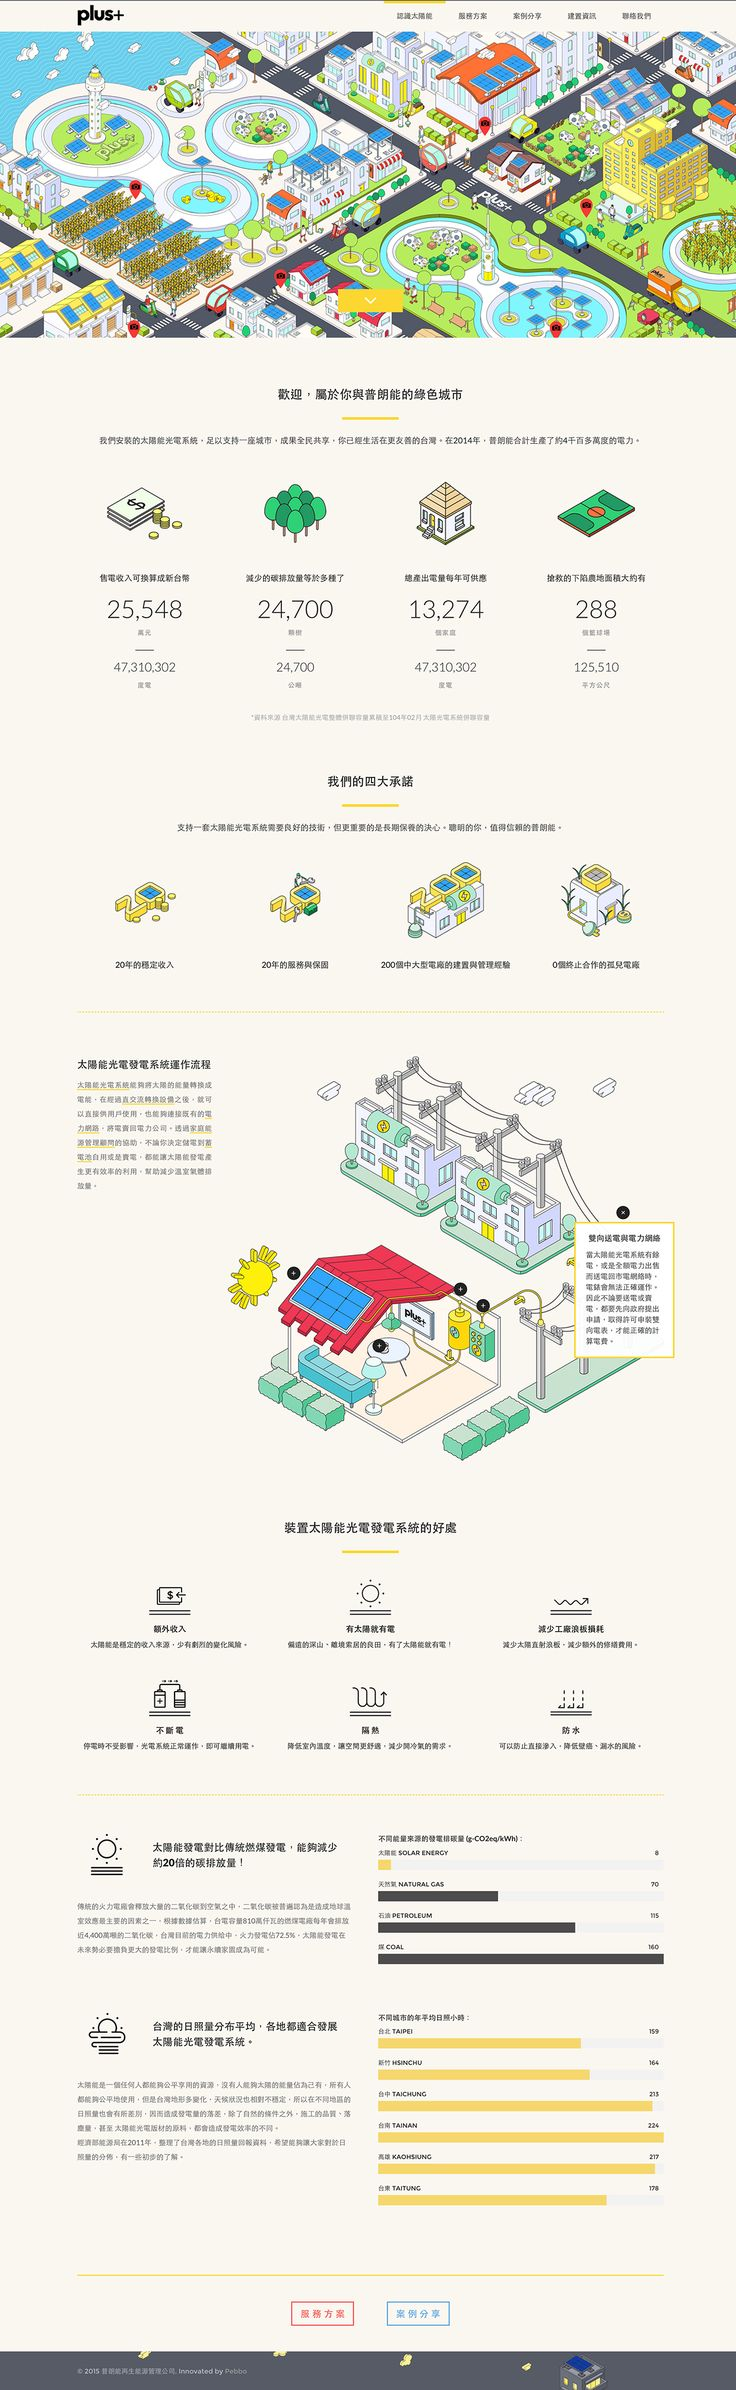 Website Illustration for 普朗能 Plus Renewable - plus+ 普朗能再生能源管理公司Please Visit the Websitehttp://www.plusrenewable.com/